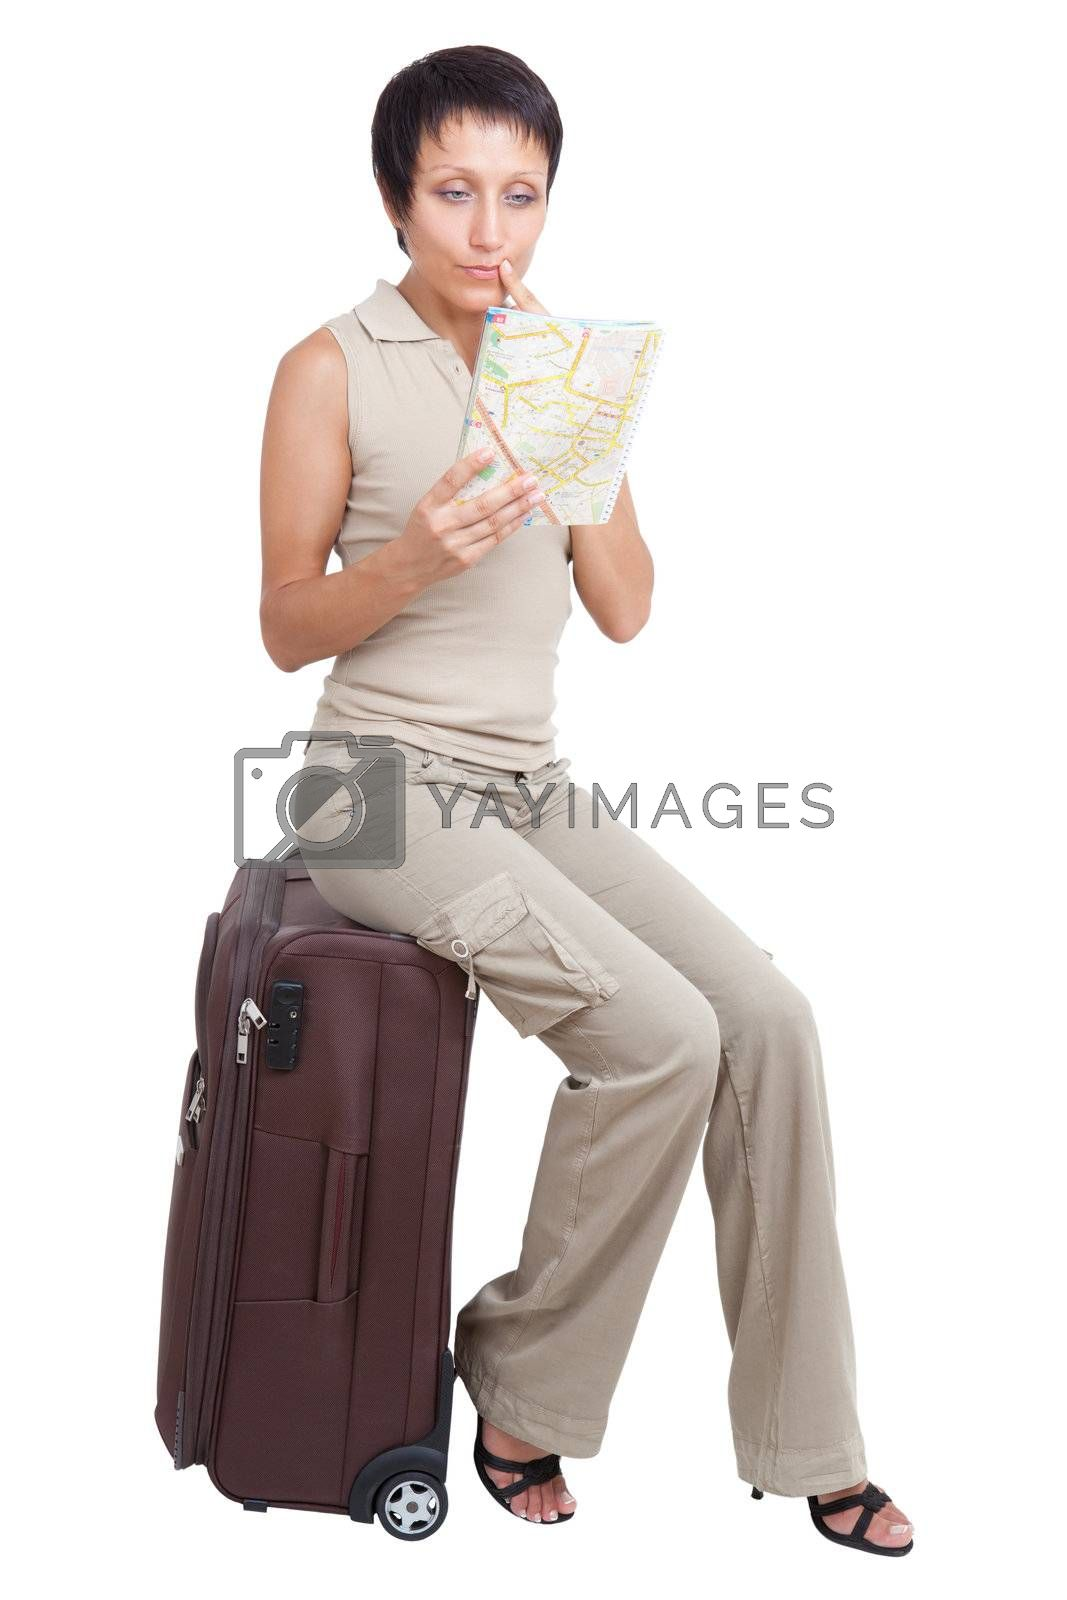 Thinking tourist woman looking at city map on suitcase isolated by SergeyAK